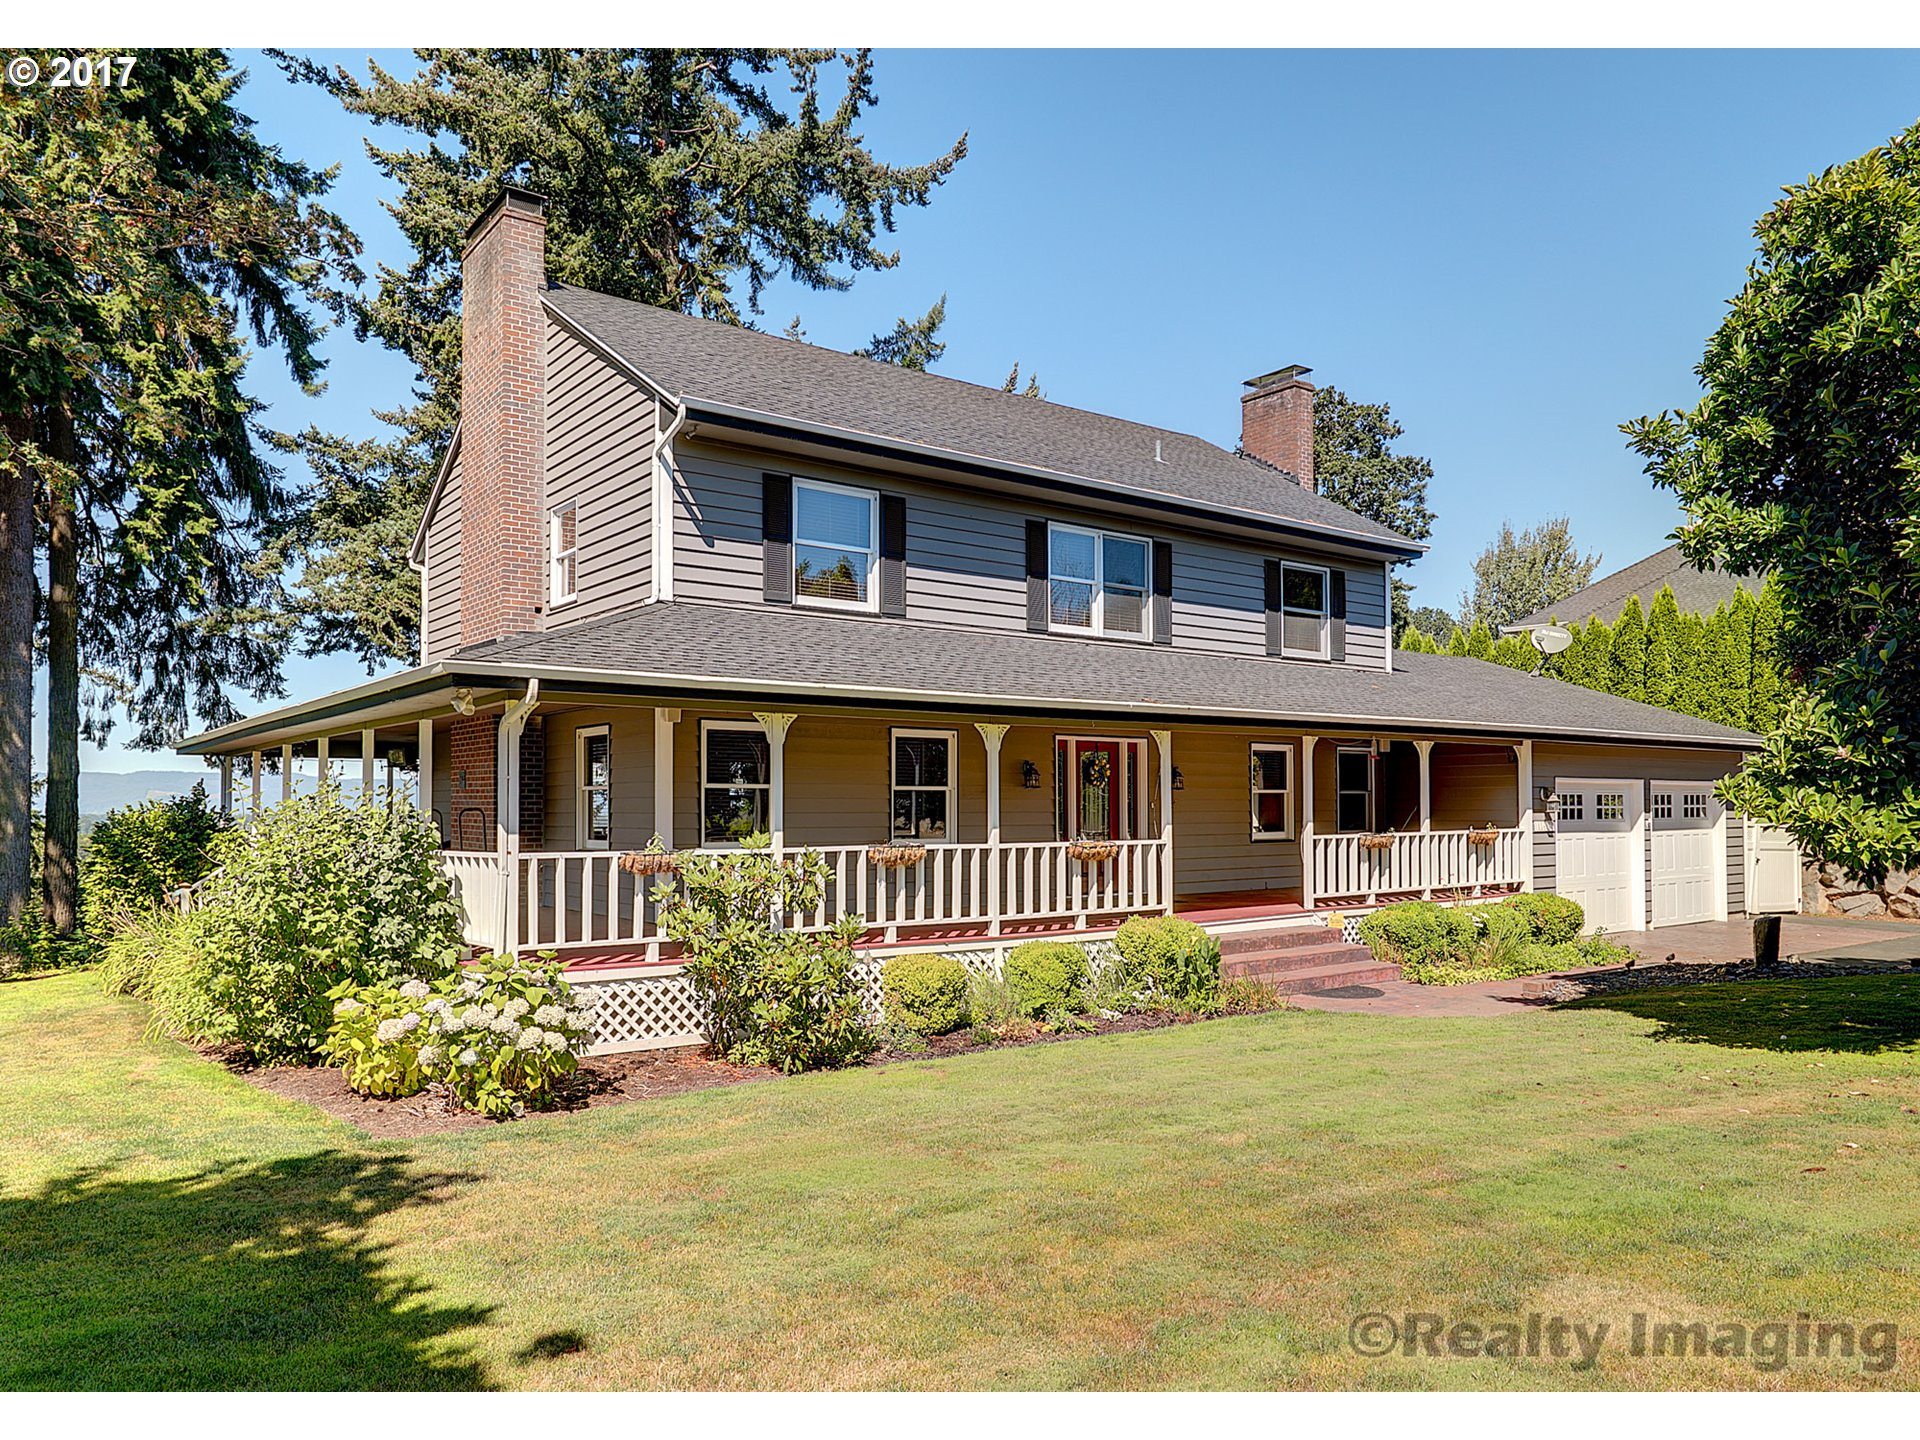 11410 NW 43RD AVE, Vancouver, WA 98685